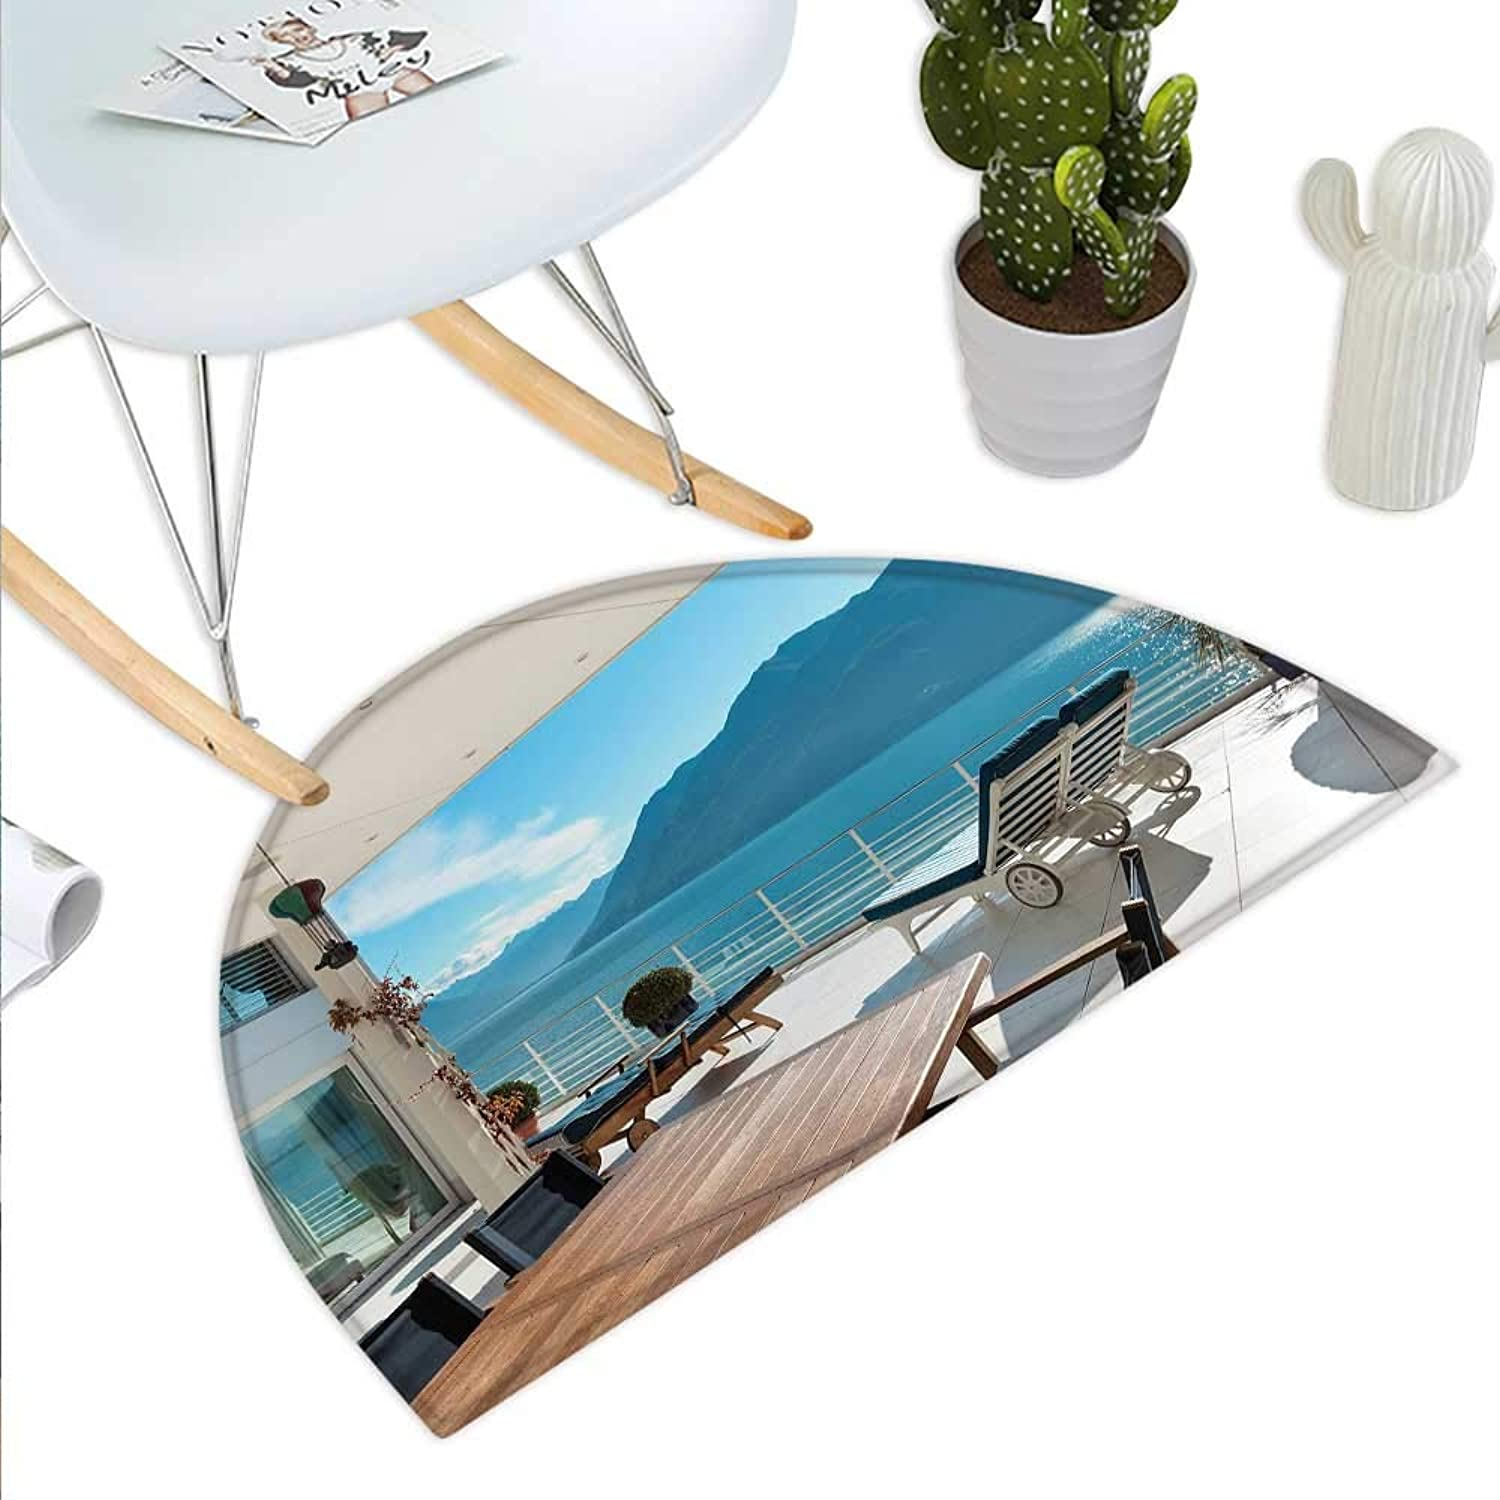 Modern Decor Semicircle Doormat Terrace Penthouse Overlooking Lake Outside Deckchairs Tranquil Scene Halfmoon doormats H 35.4  xD 53.1  White Dark bluee bluee